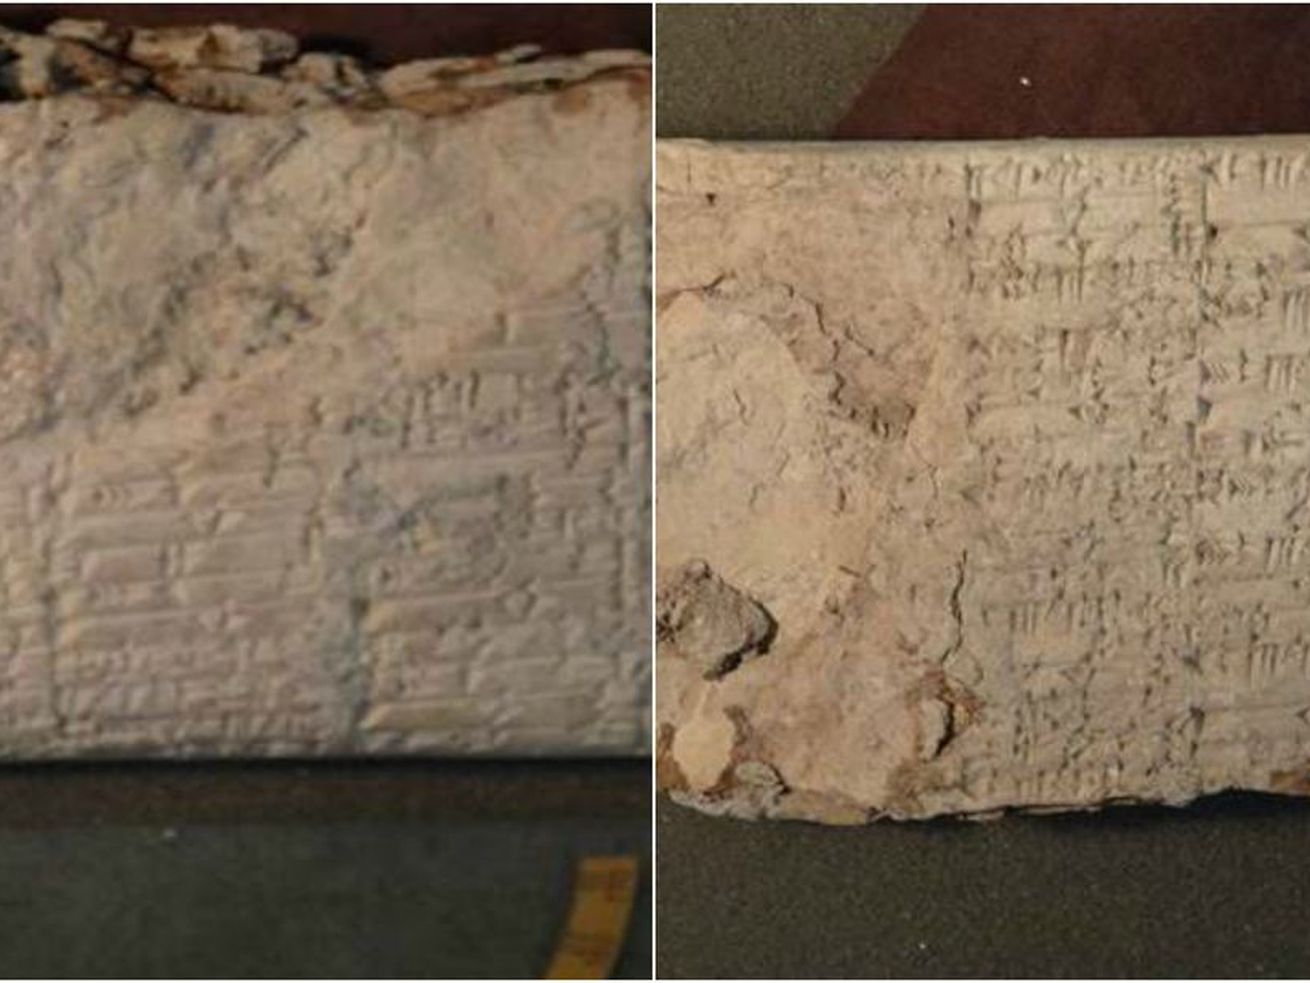 Some of the cuneiform tablets confiscated by the DOJ.